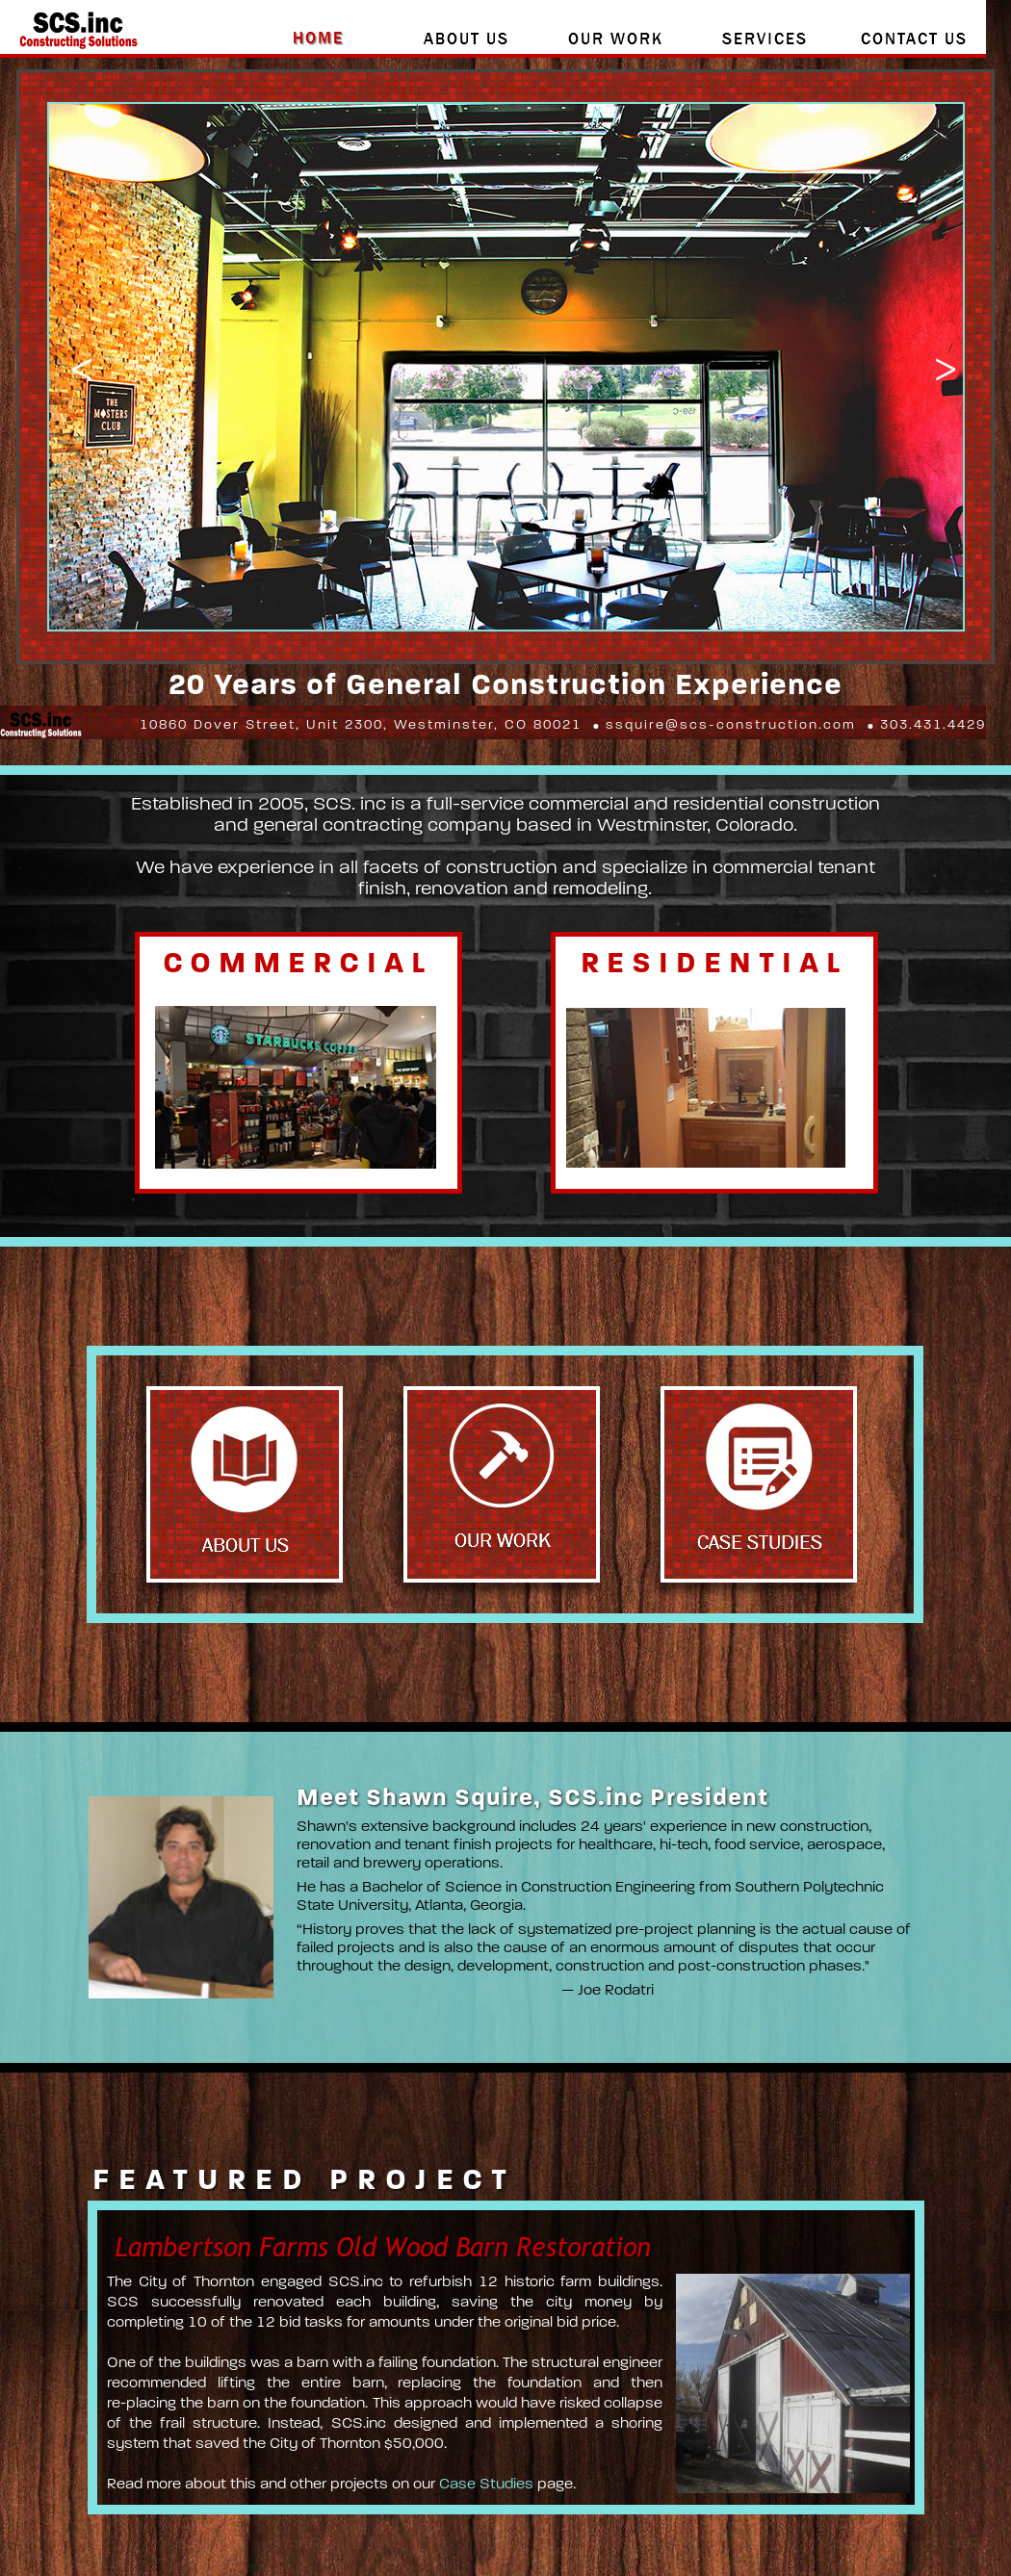 westminster company case study